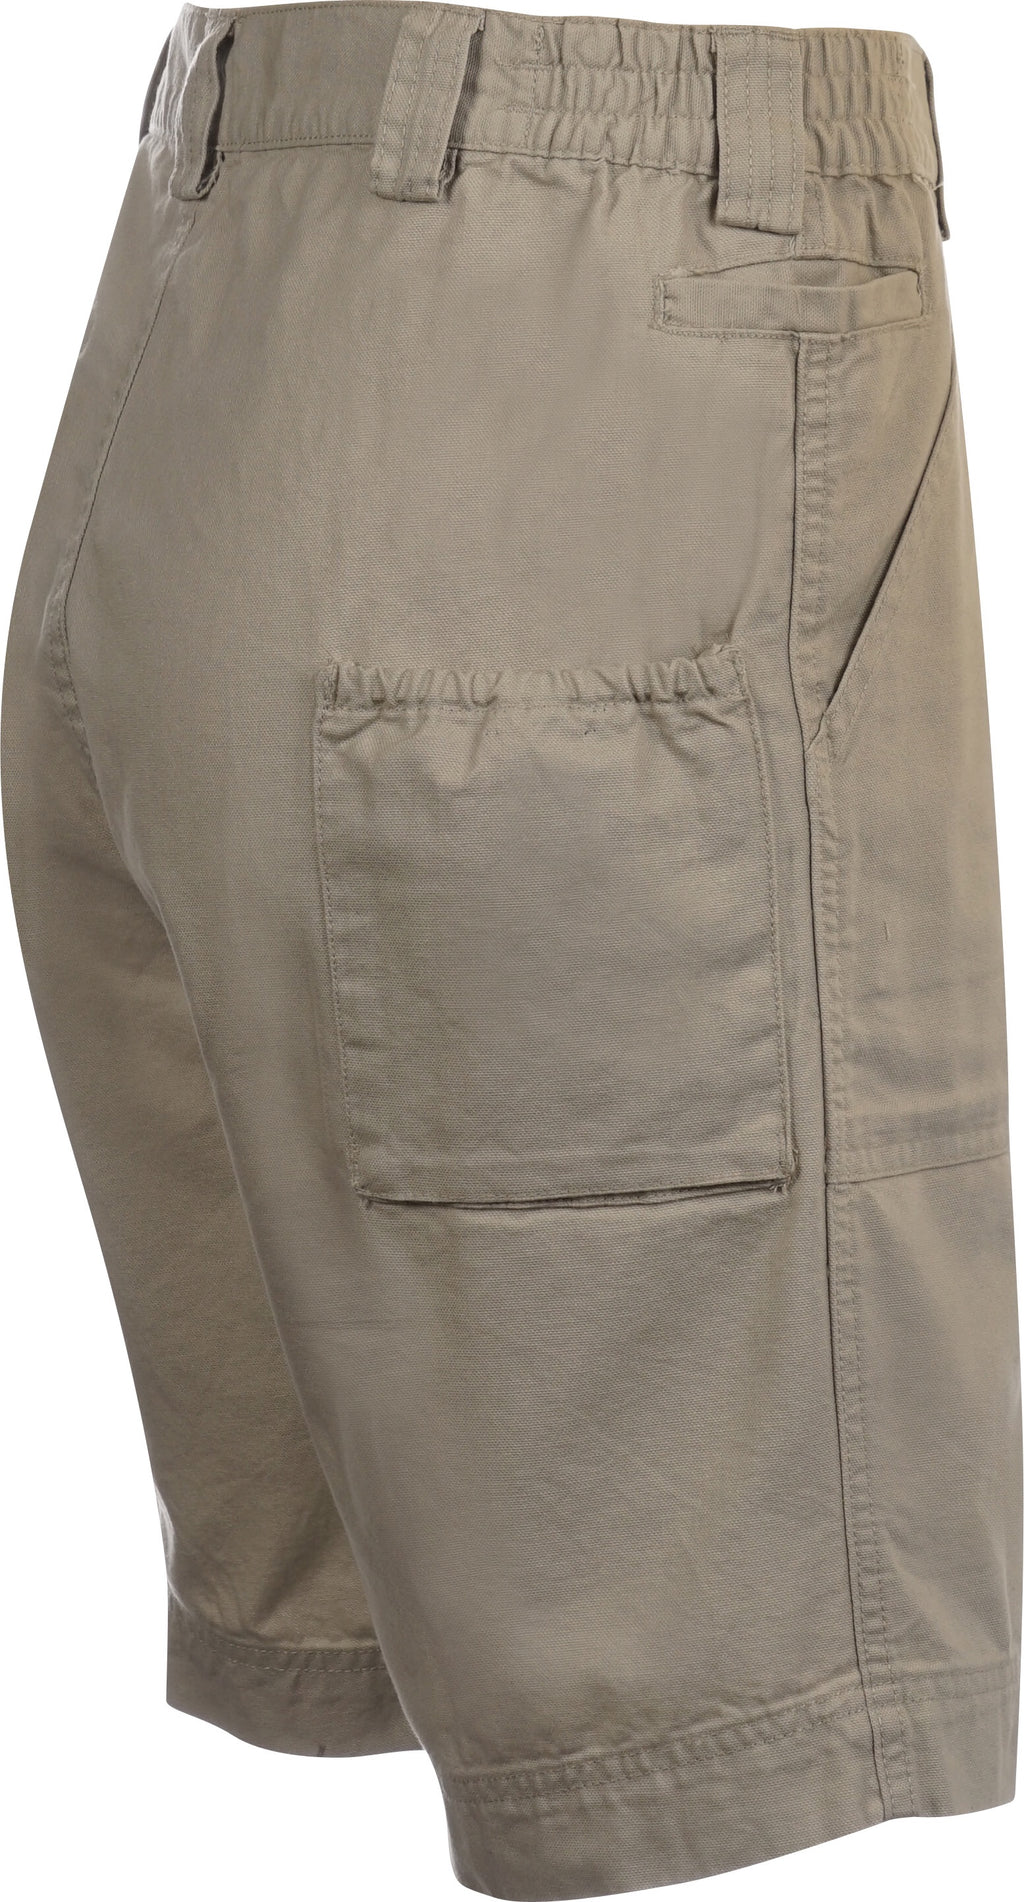 Hook & Tackle Beer Can Island Fishing Short Long Neck, Khaki